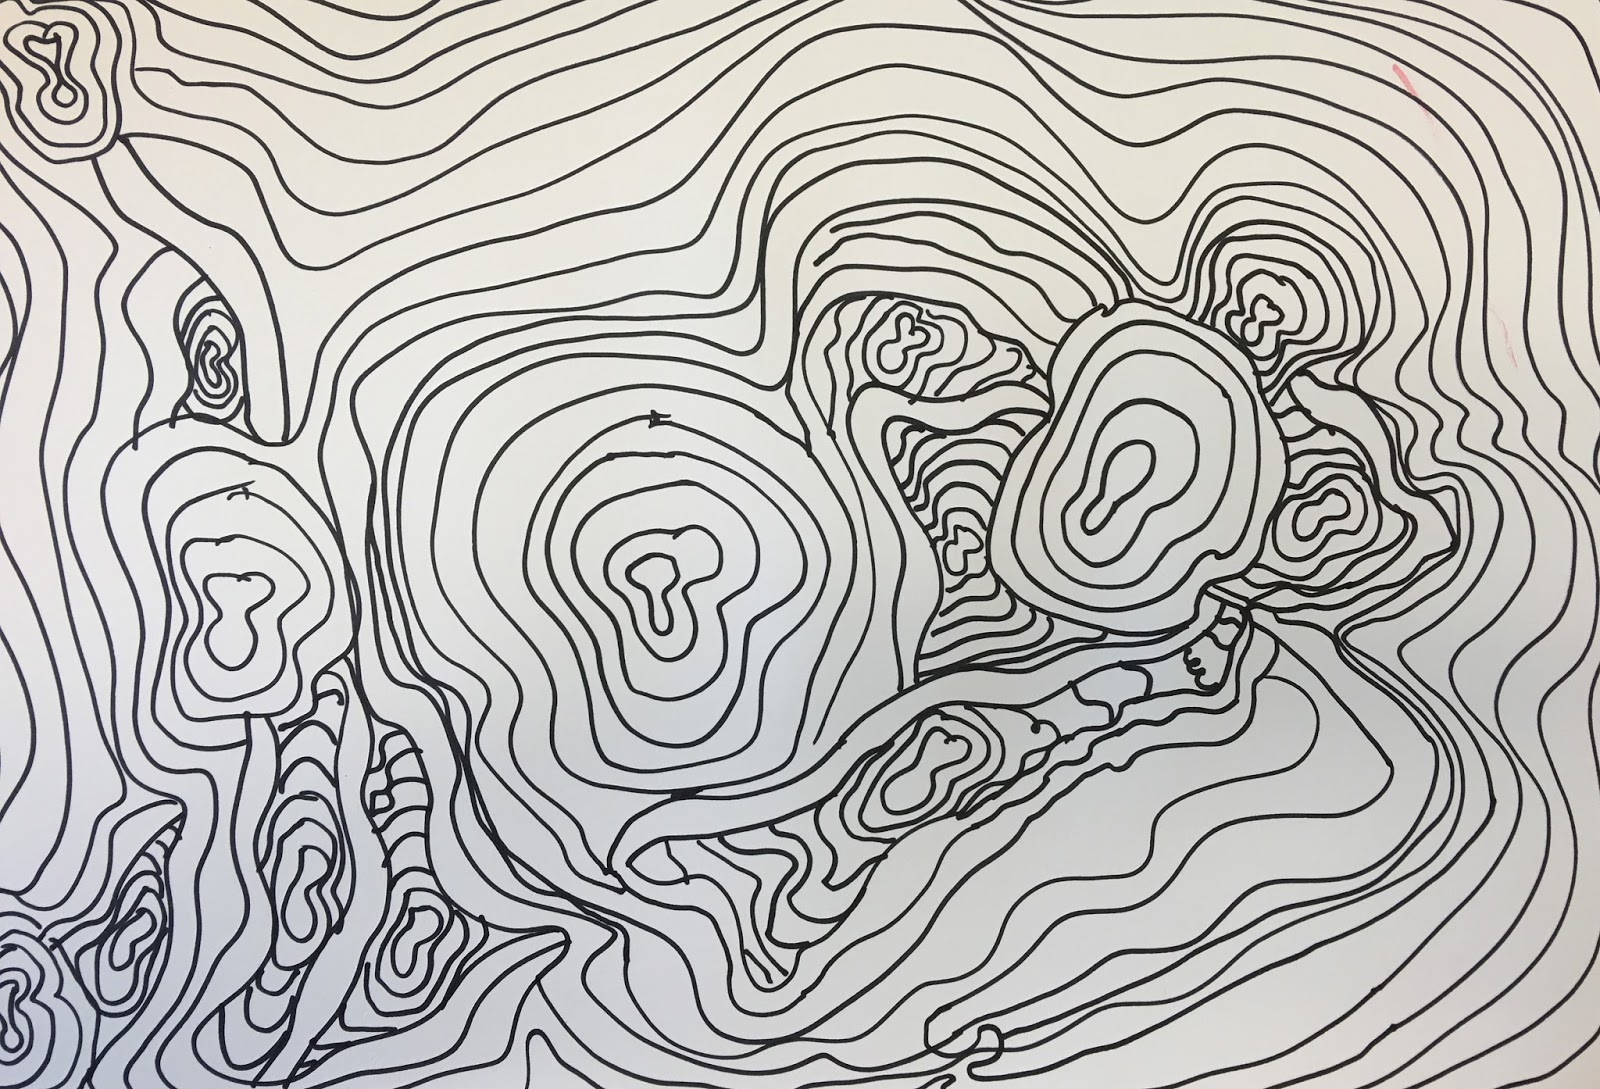 Art Room Blog 4th Grade Steam Lesson Creating Topography